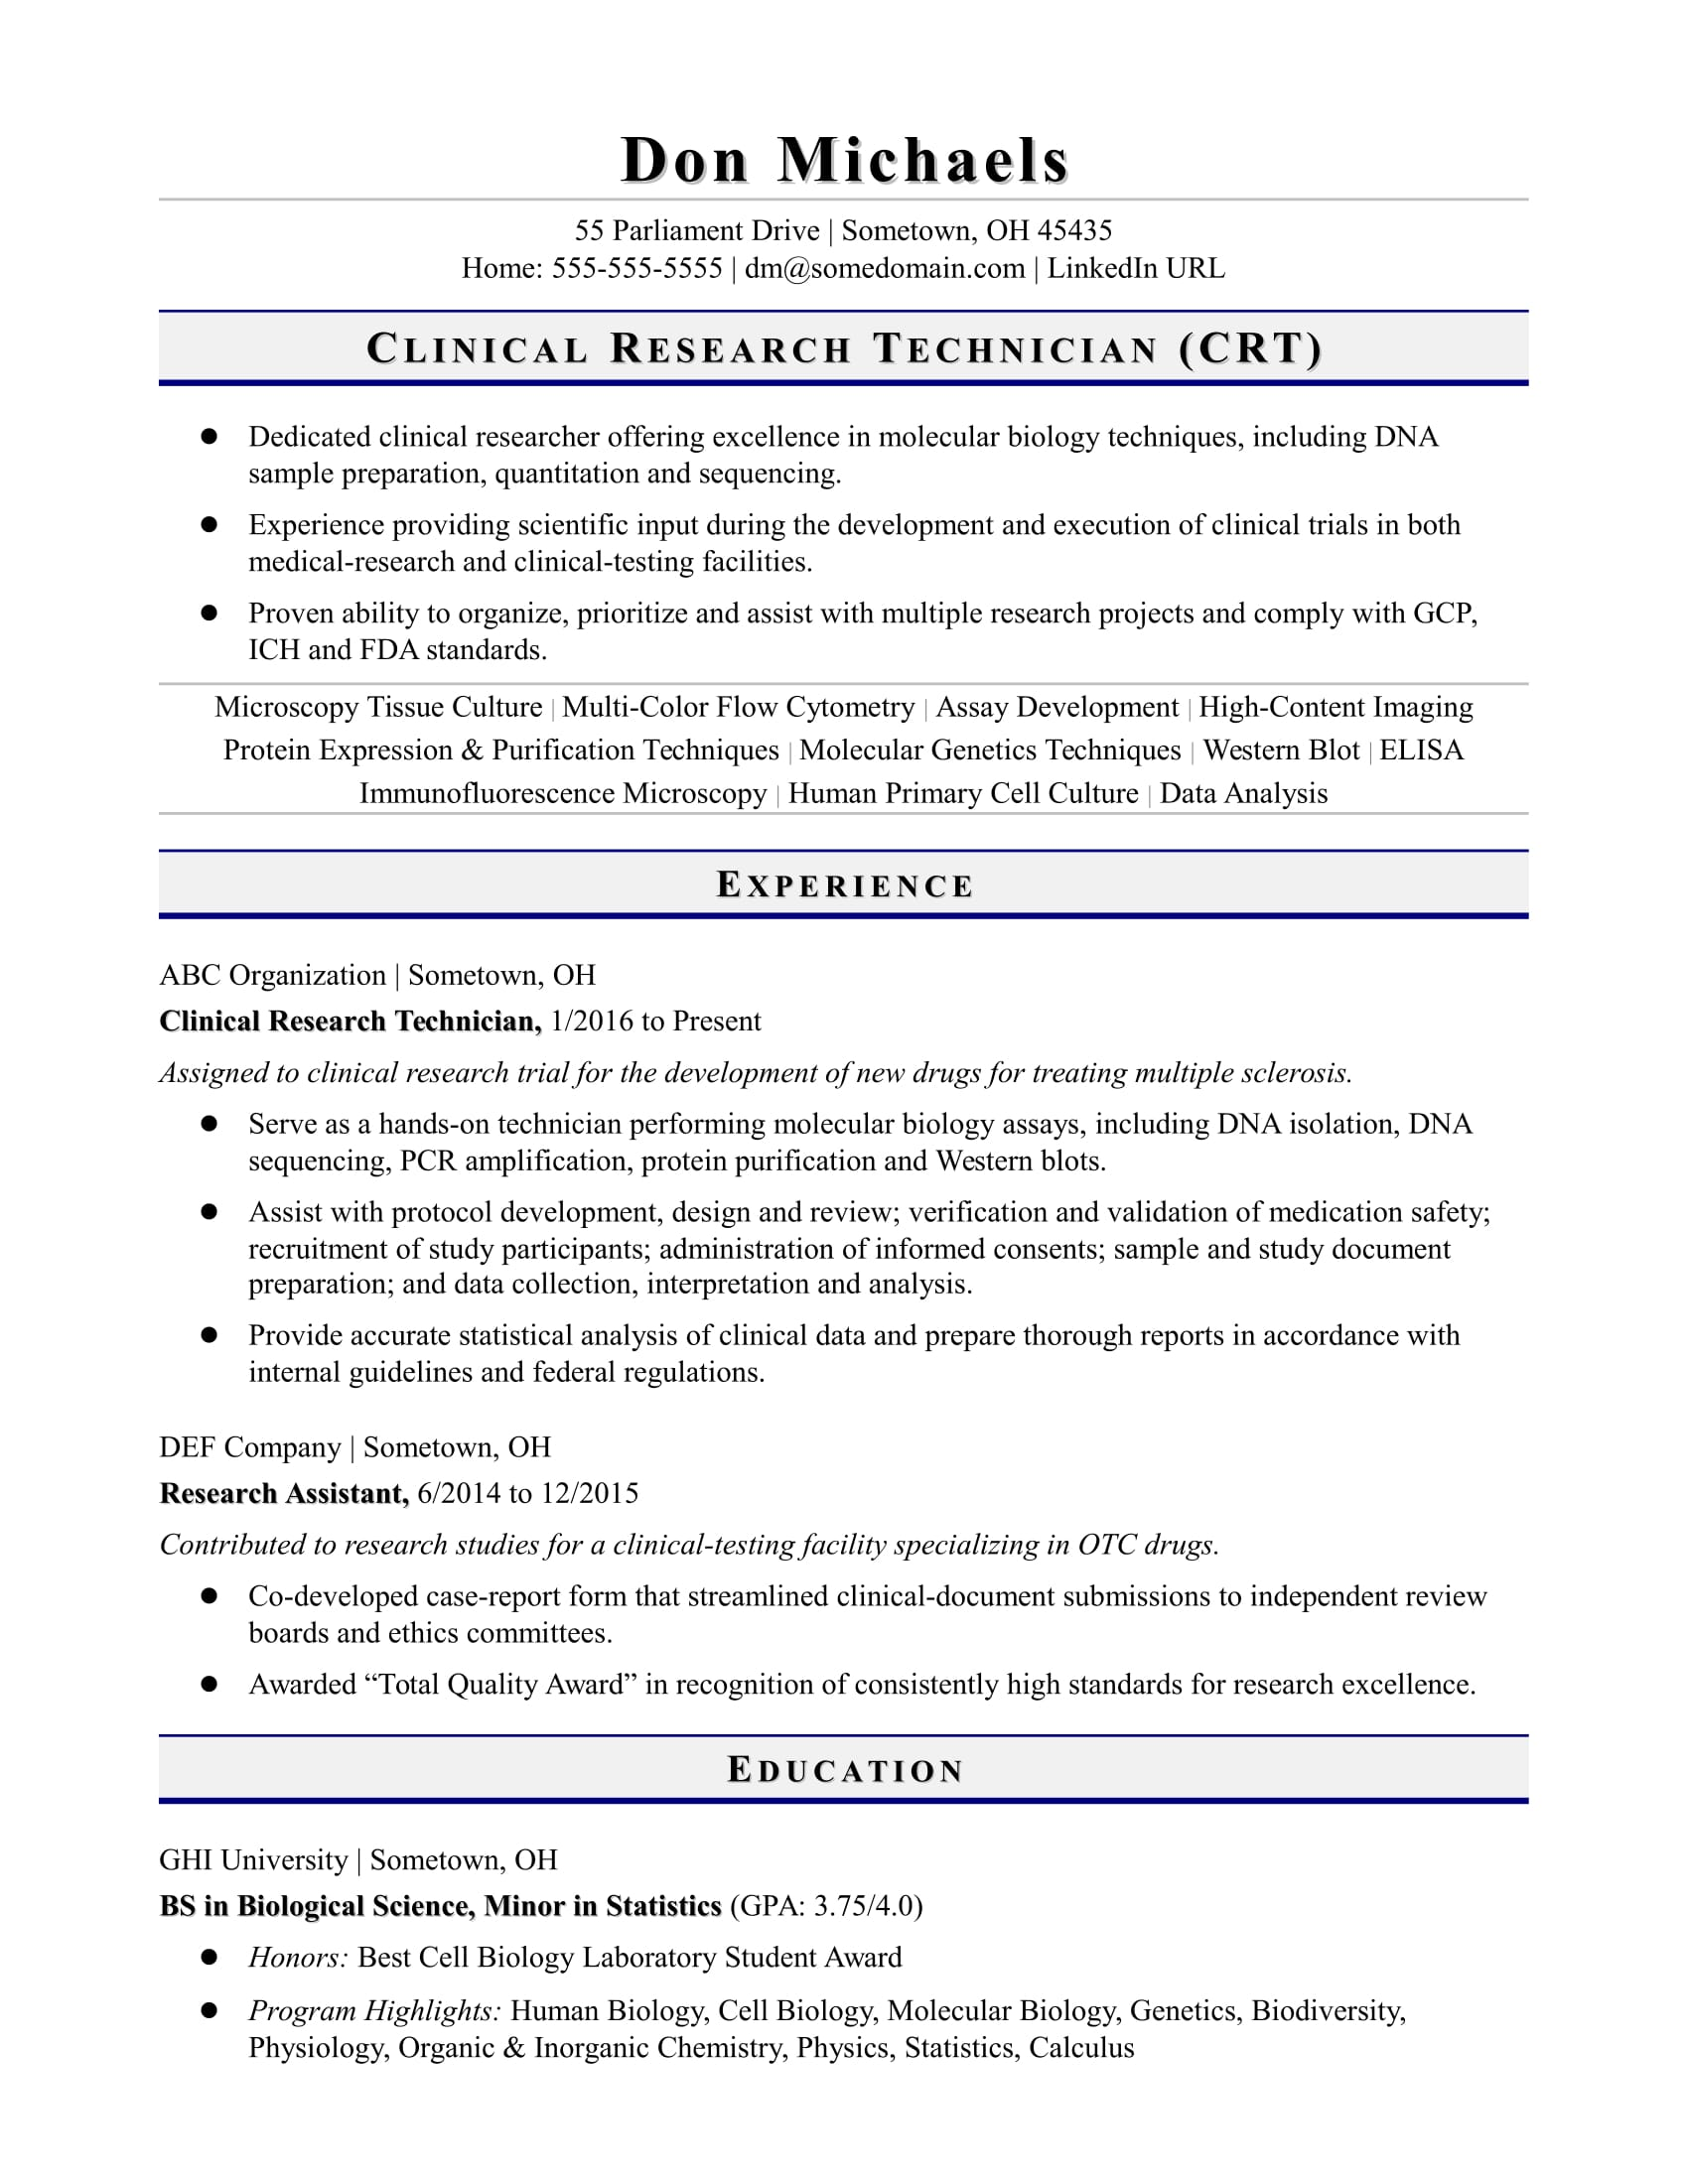 Entry level research technician resume sample monster sample resume for an entry level research technician yelopaper Gallery